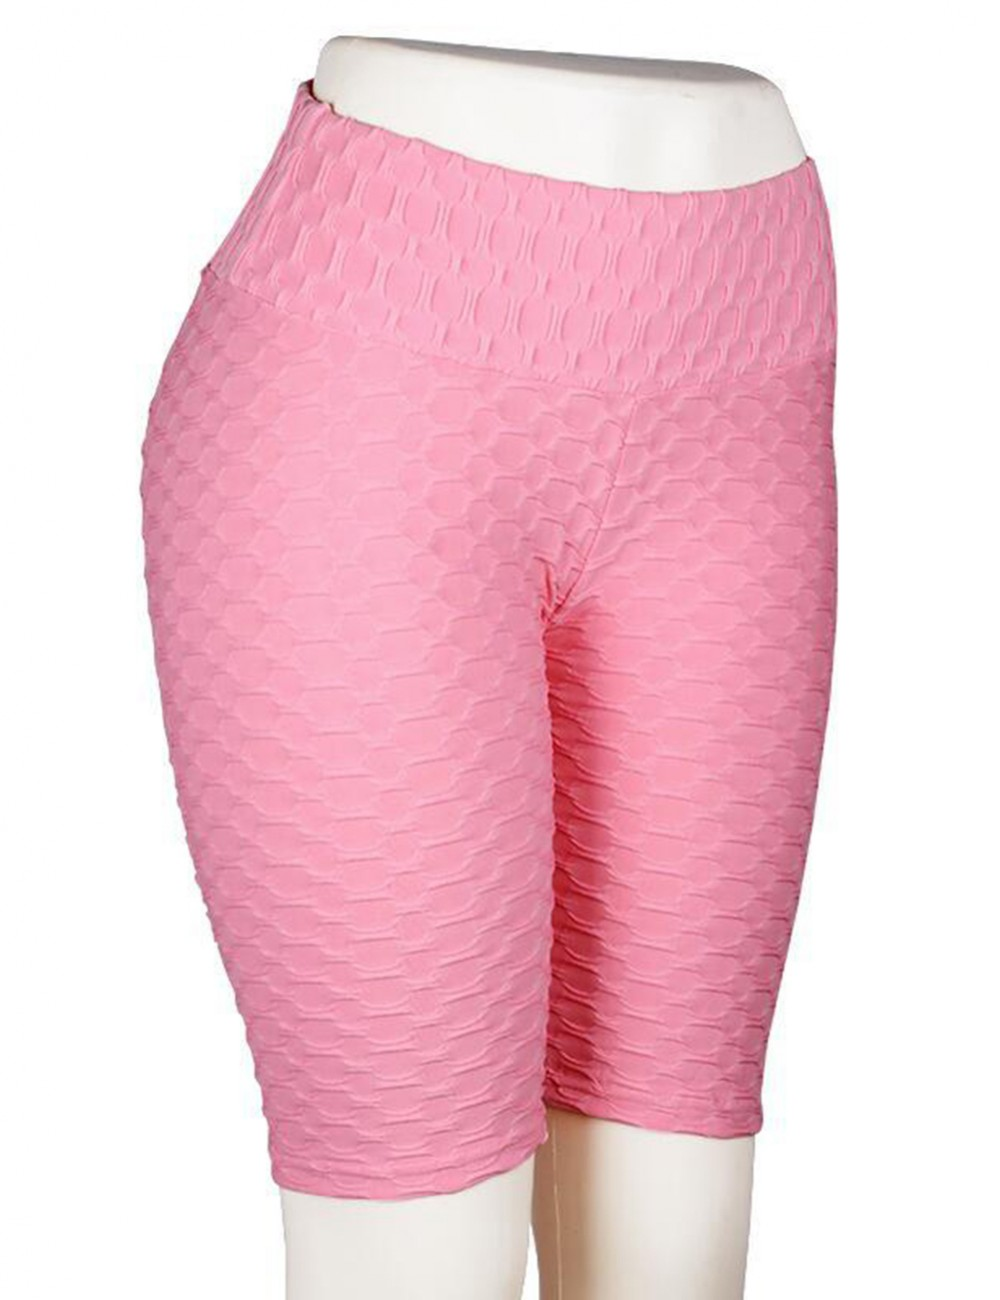 Fiercely Pink High Wasit Bike Gym Shorts Jacquard Weave High Quality